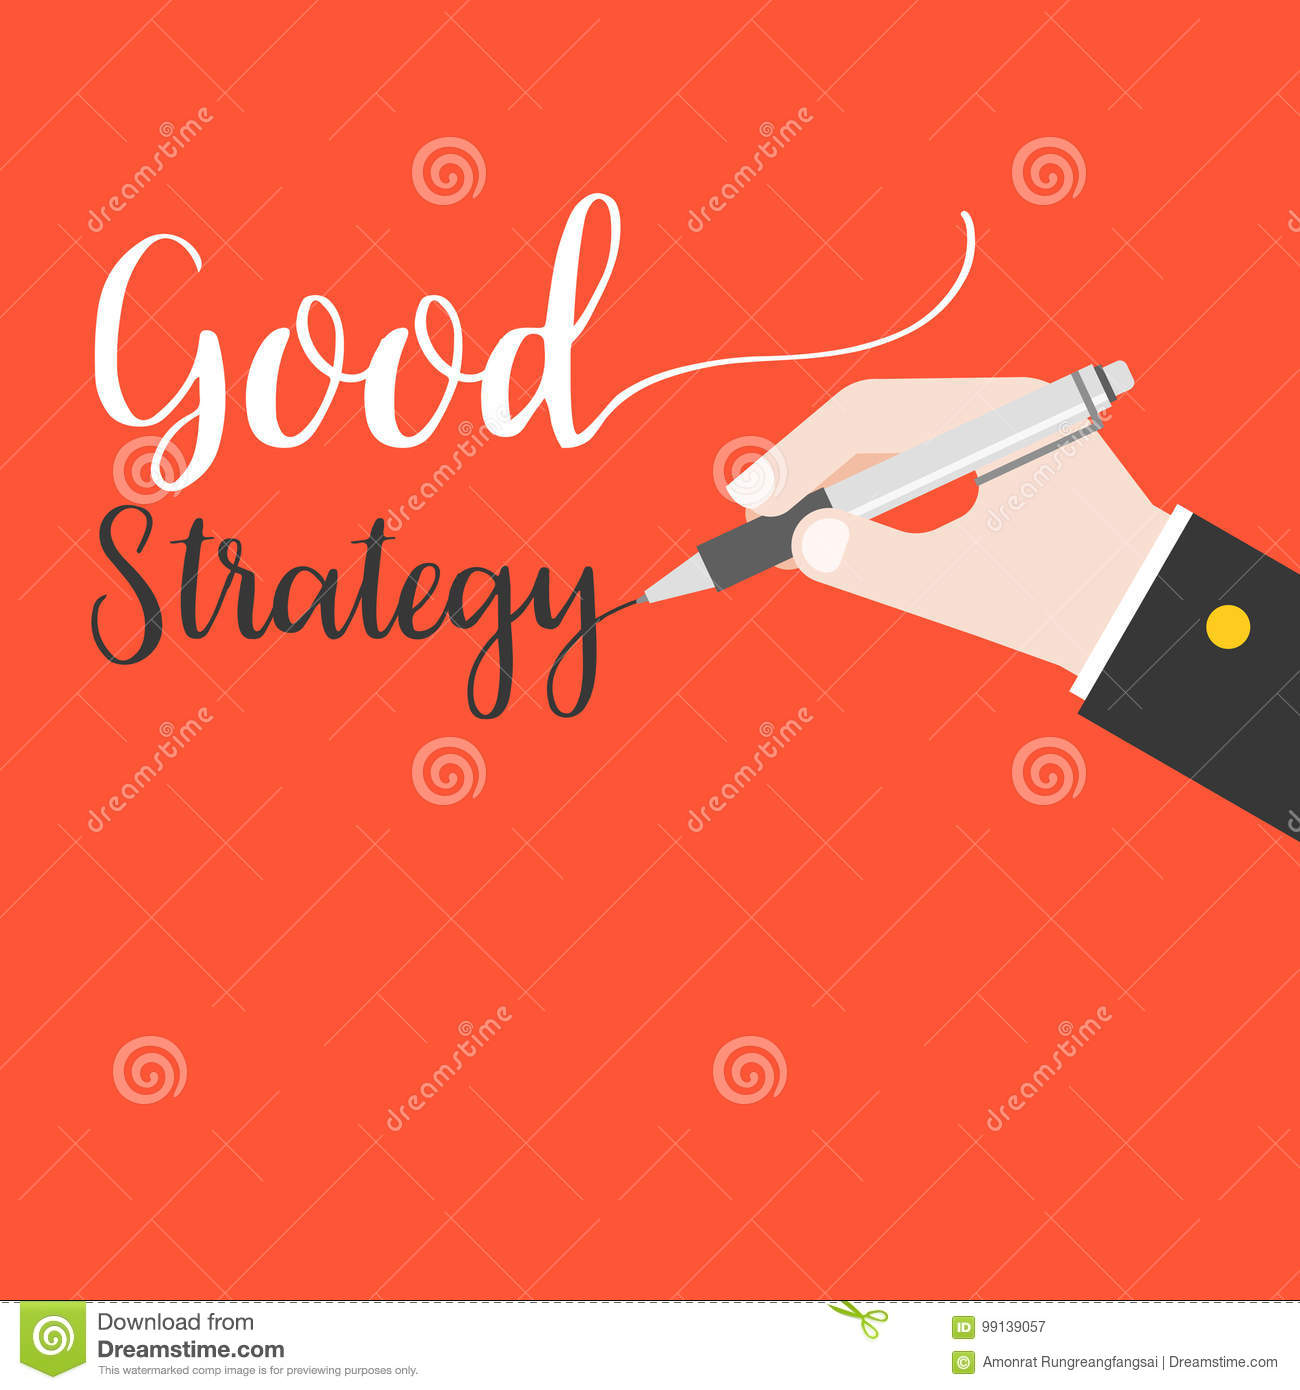 Business hand holding pen writing words good strategy hand lettering on red background